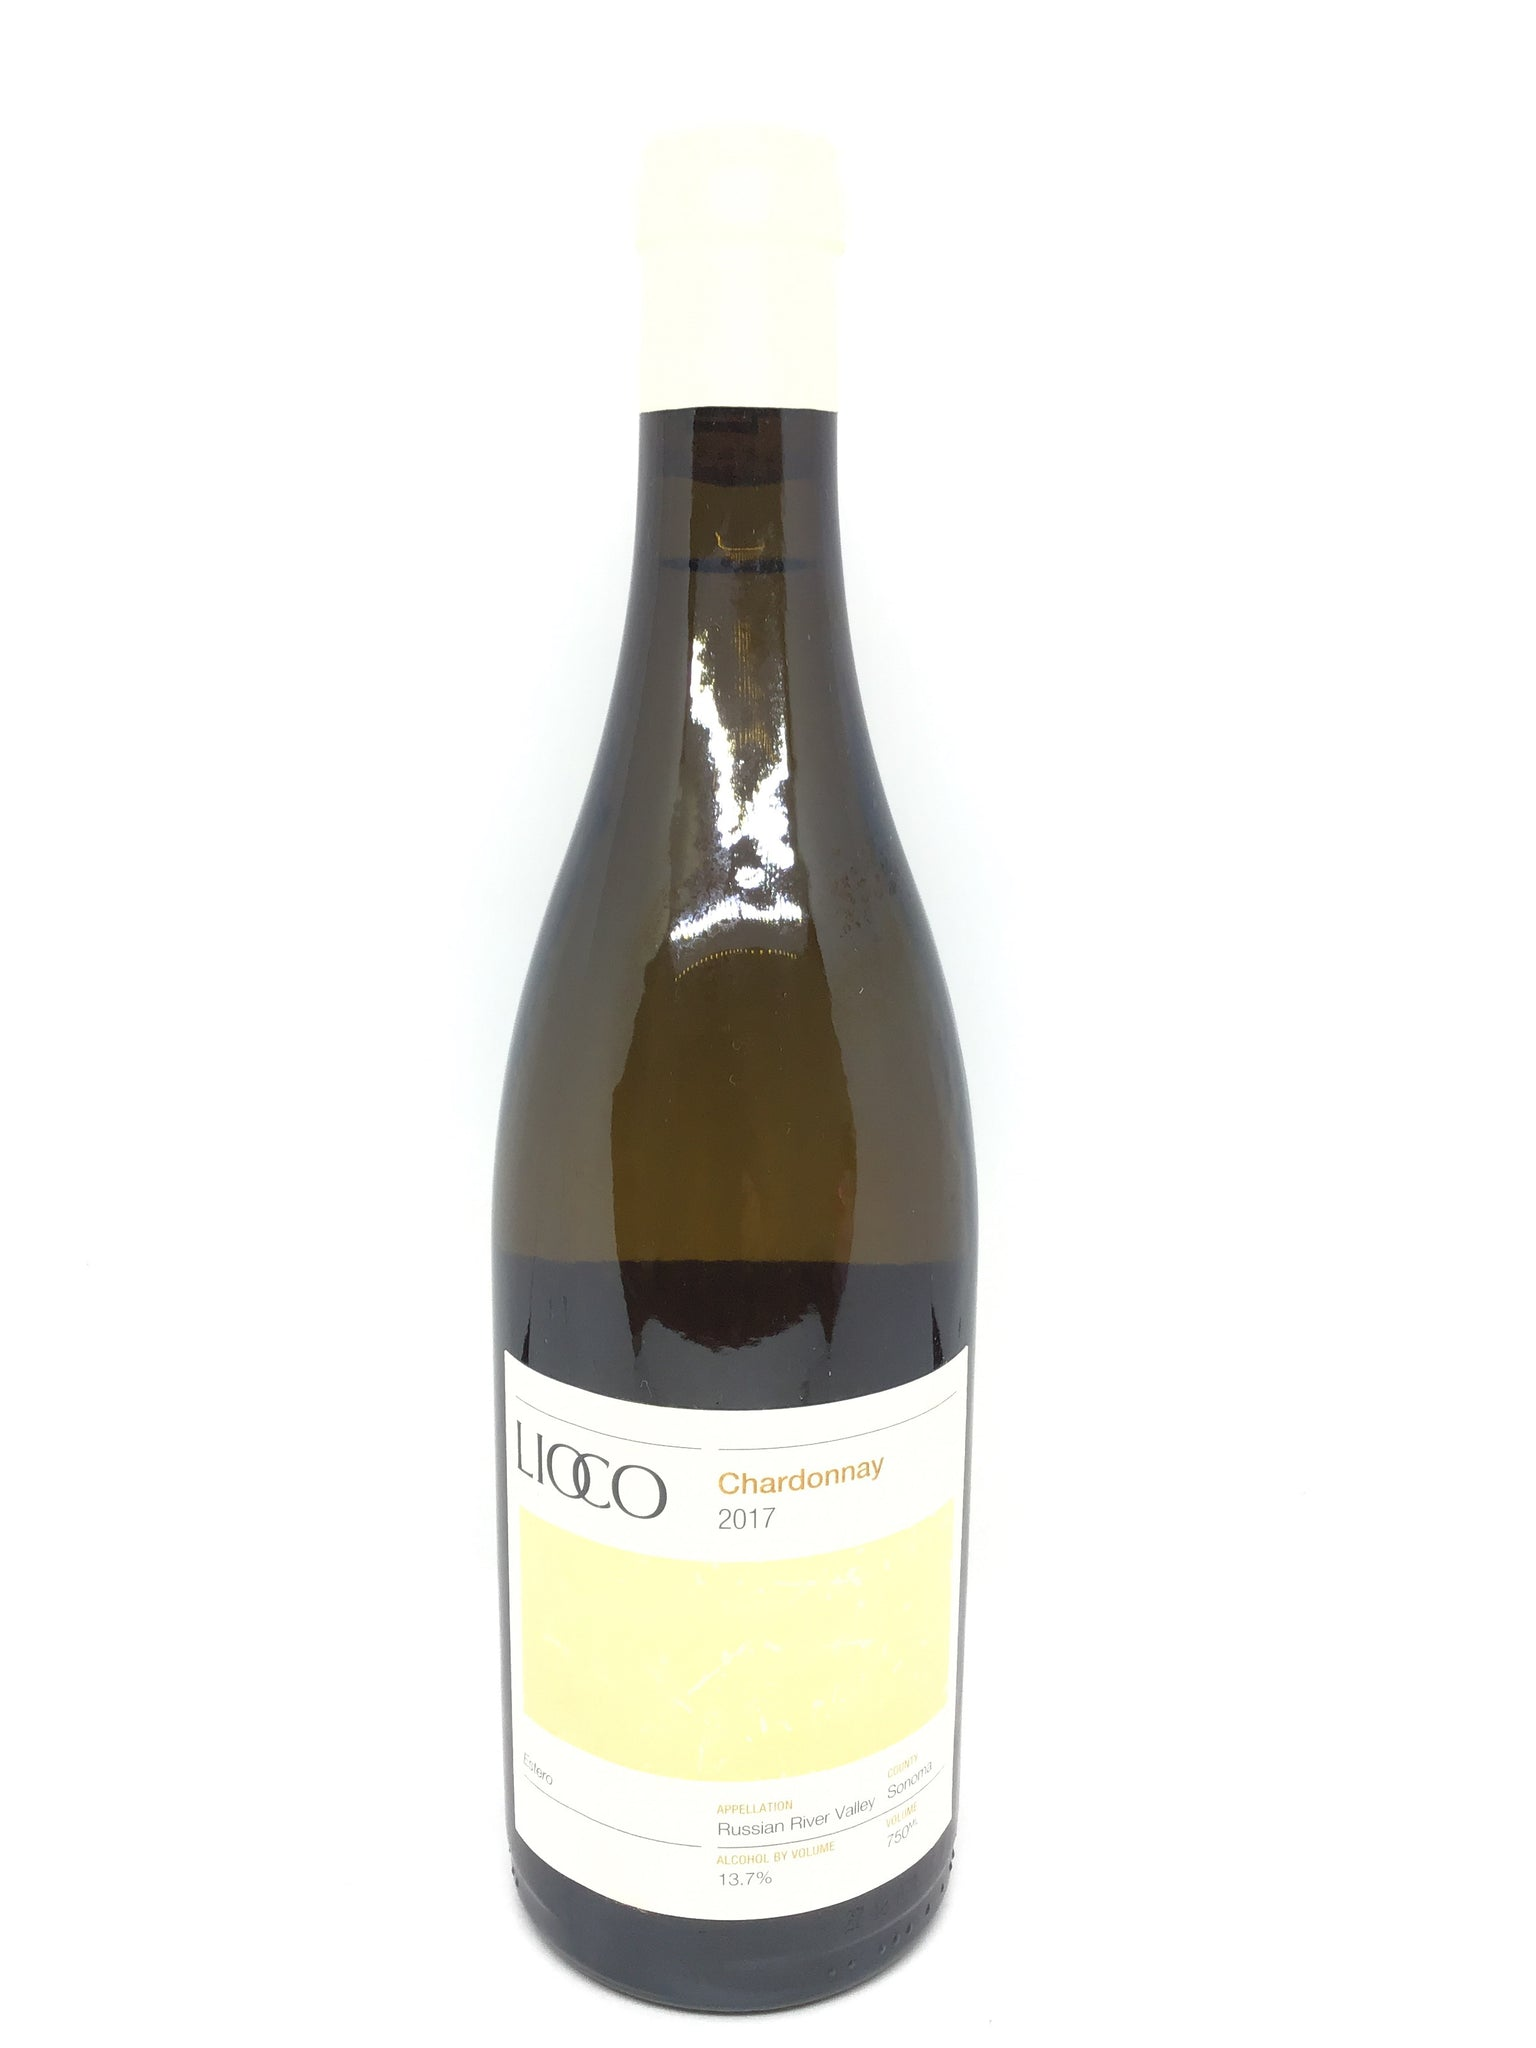 Lioco, 'Estero', Chardonnay, Russian River Valley, Sonoma County, California, 2017